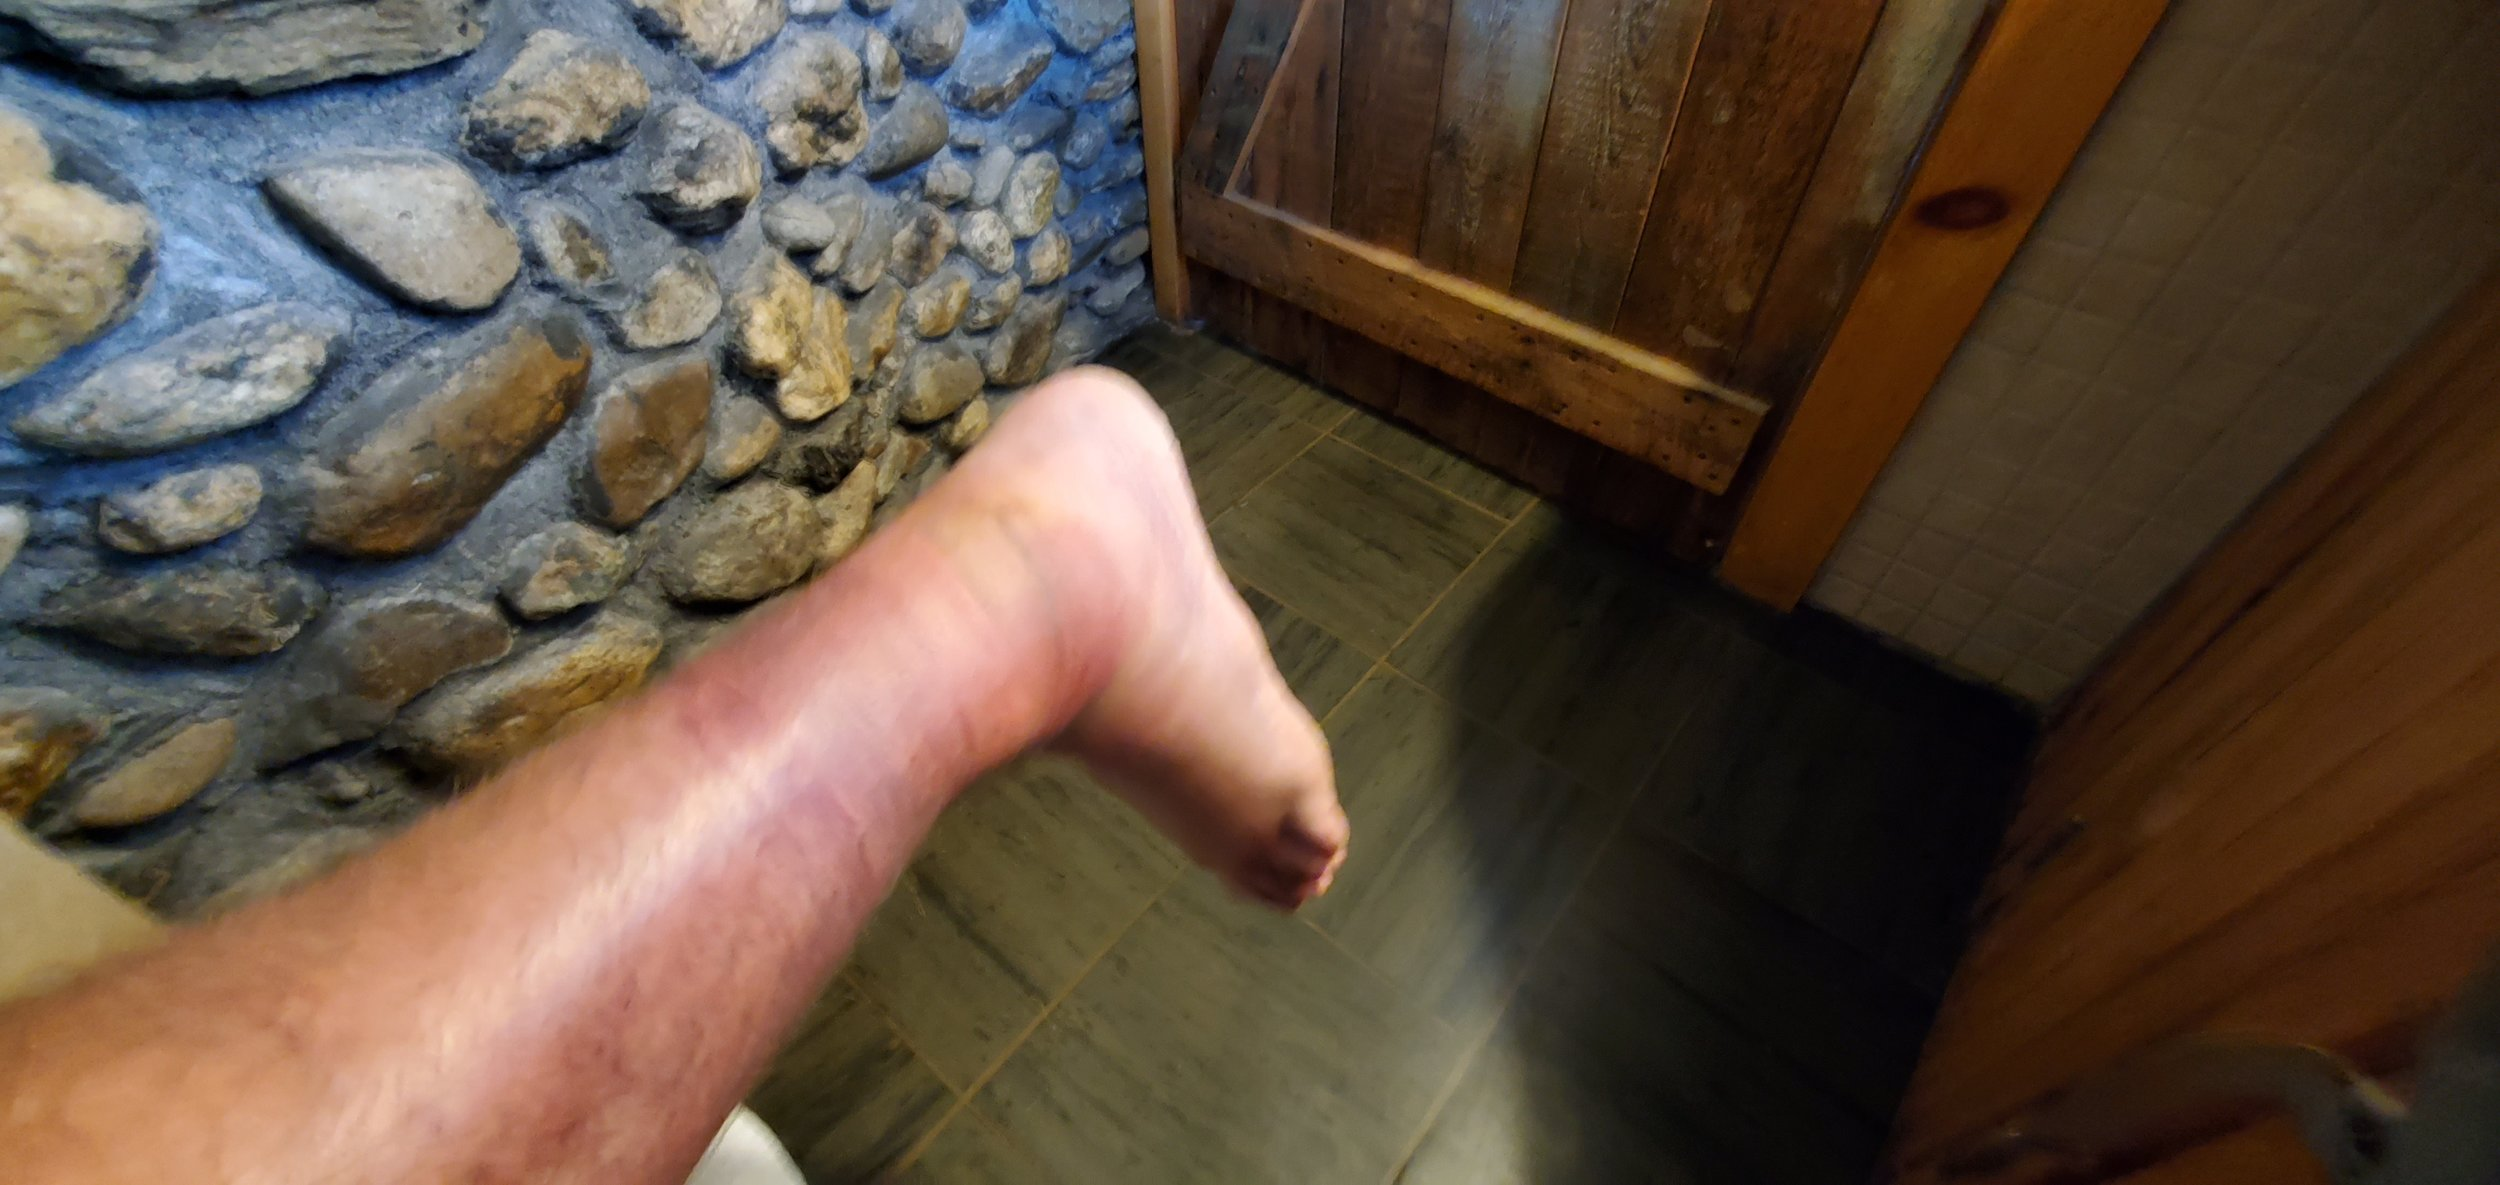 Here's what the ankle looked like later on. Yeah… it was pretty haggard.